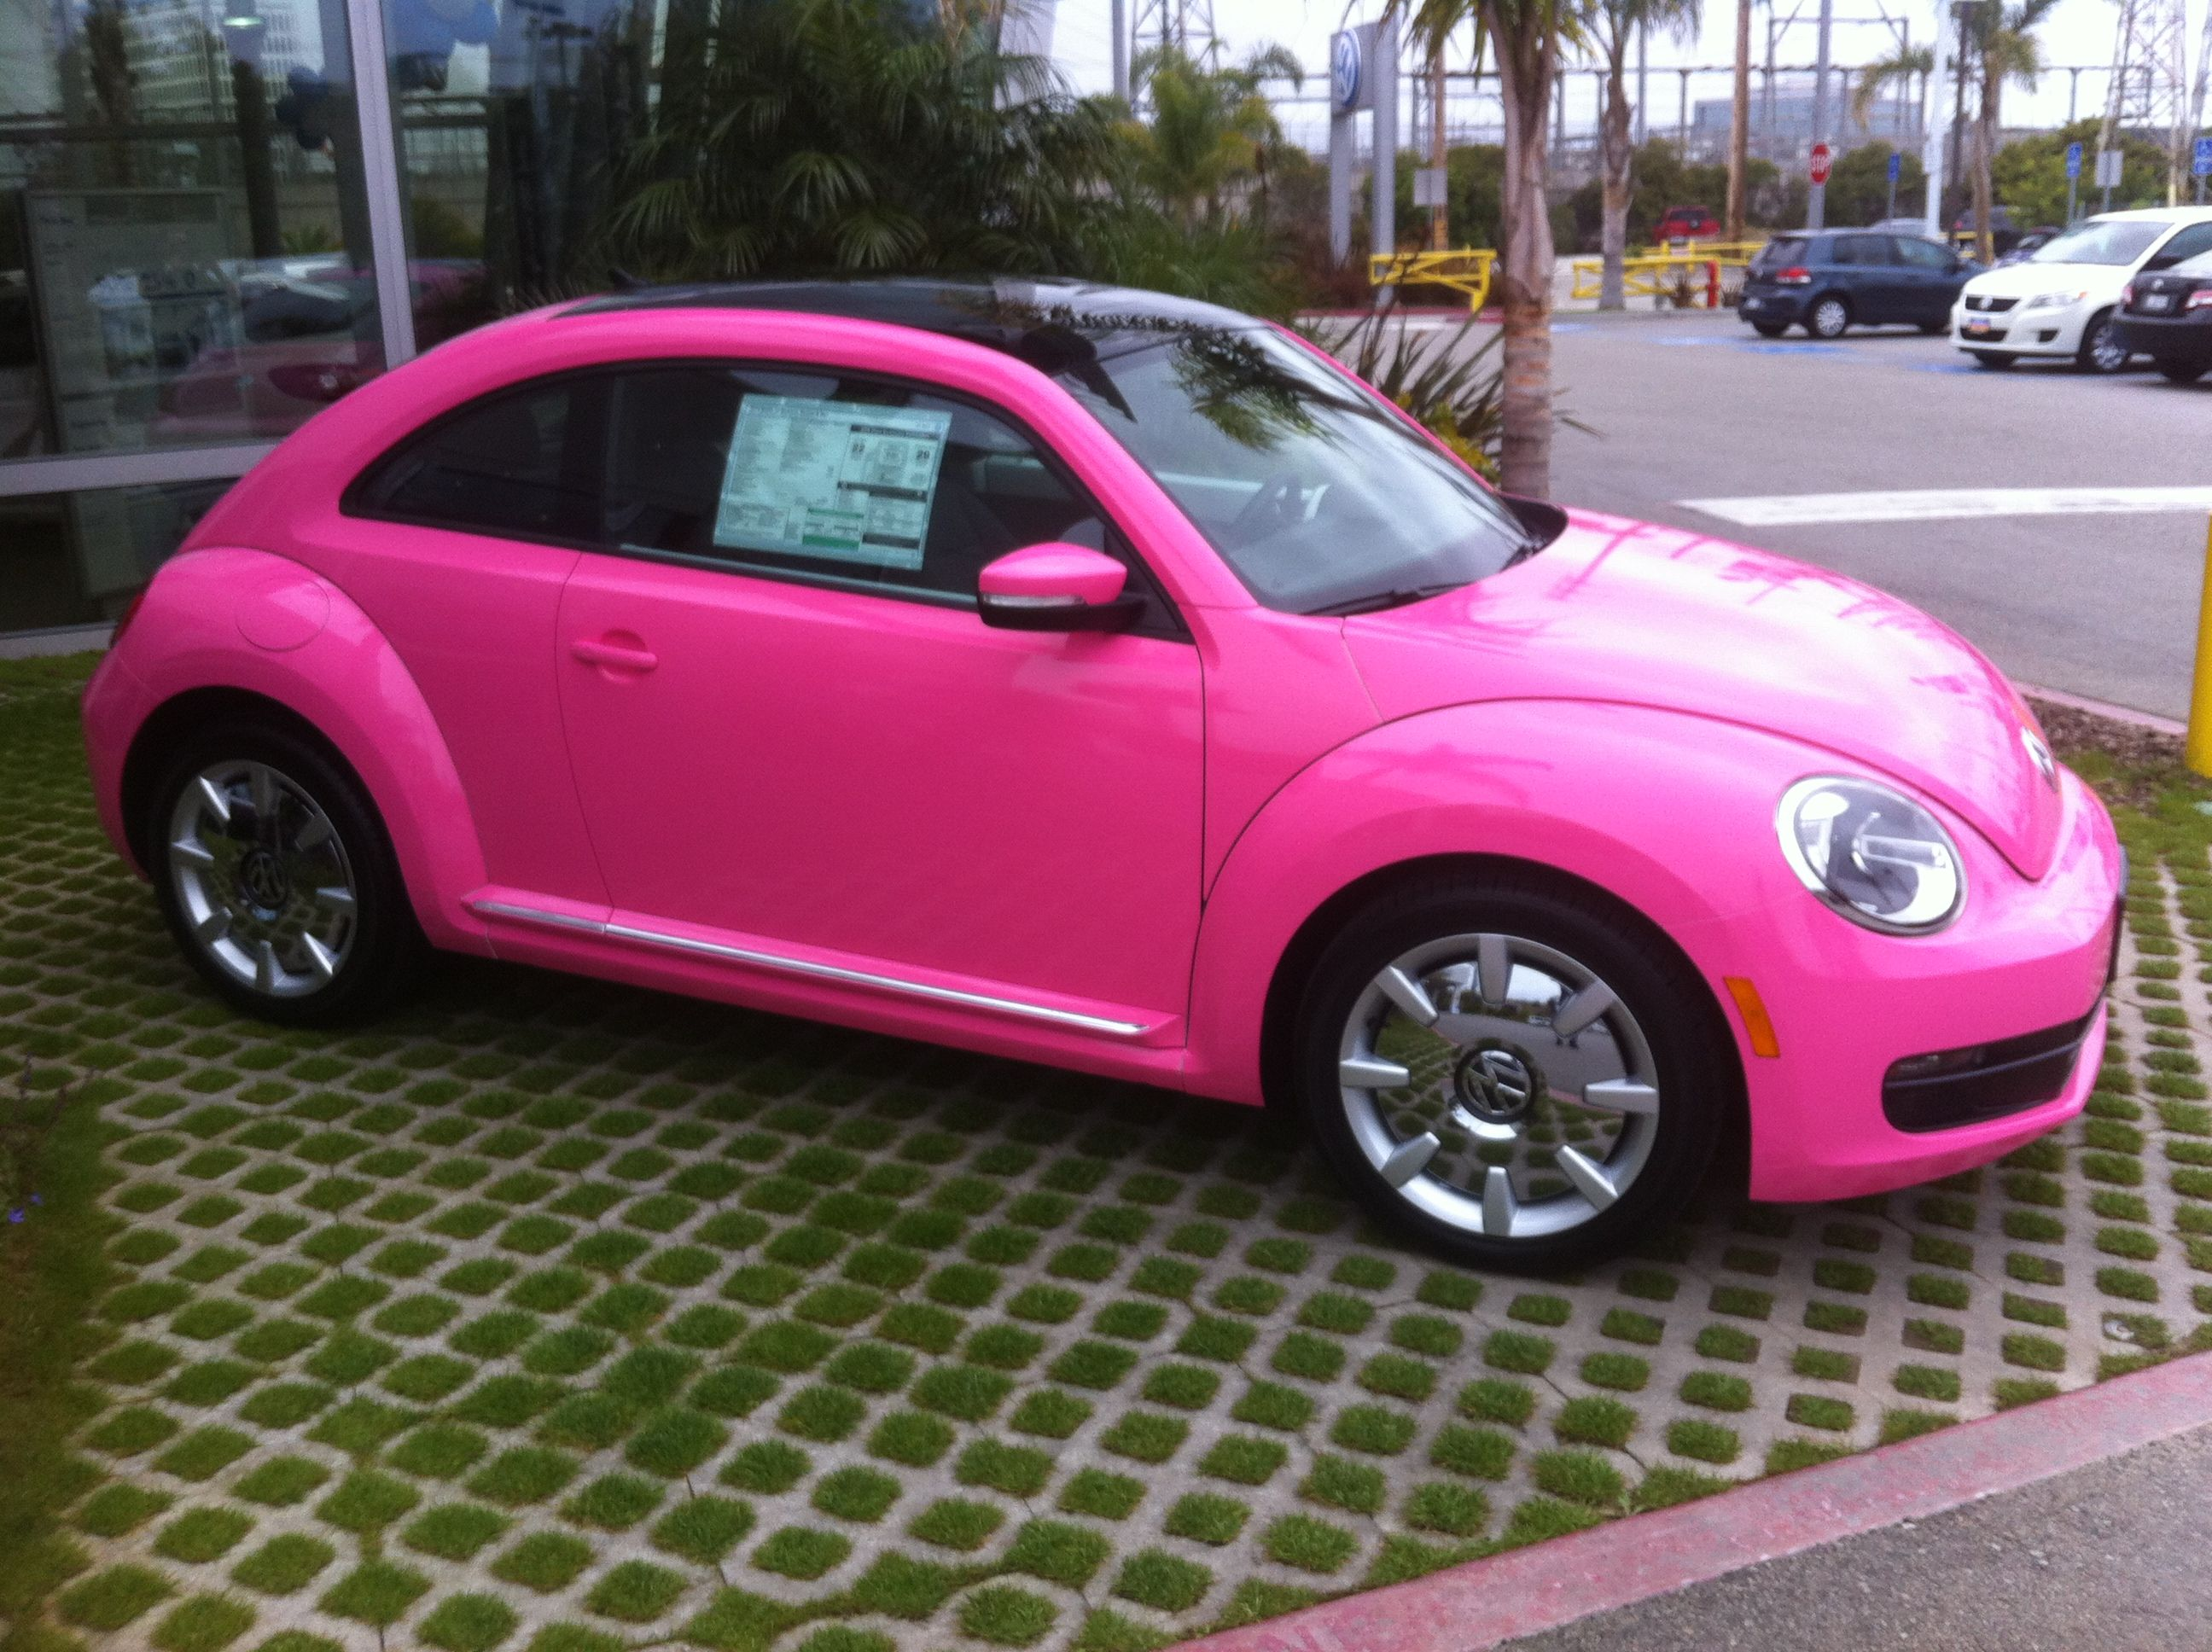 Hot Pink Beetle Cars 2017 Premier Auto Wraps Inc All Rights Reserved Site Design A